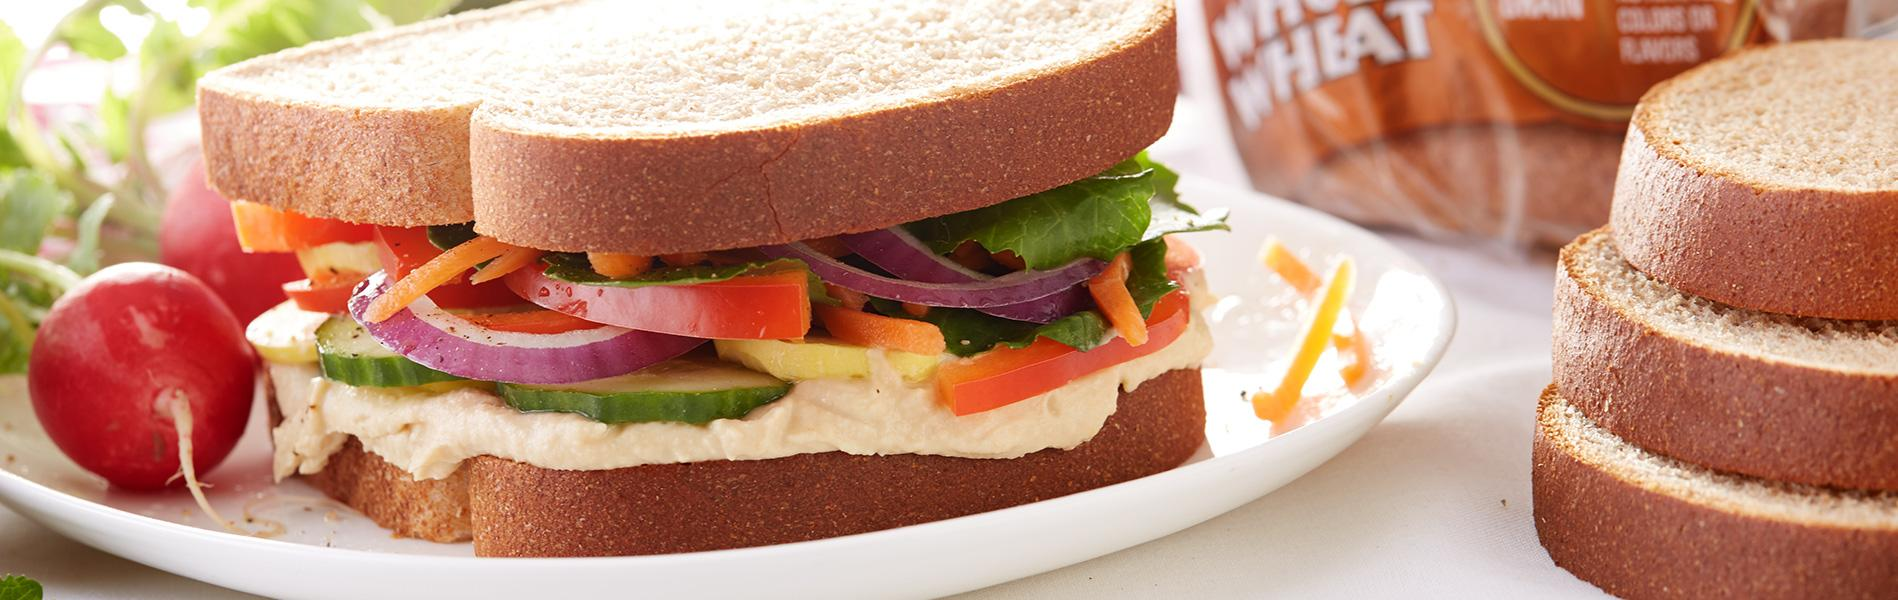 Veggie sandwich made with whole wheat bread